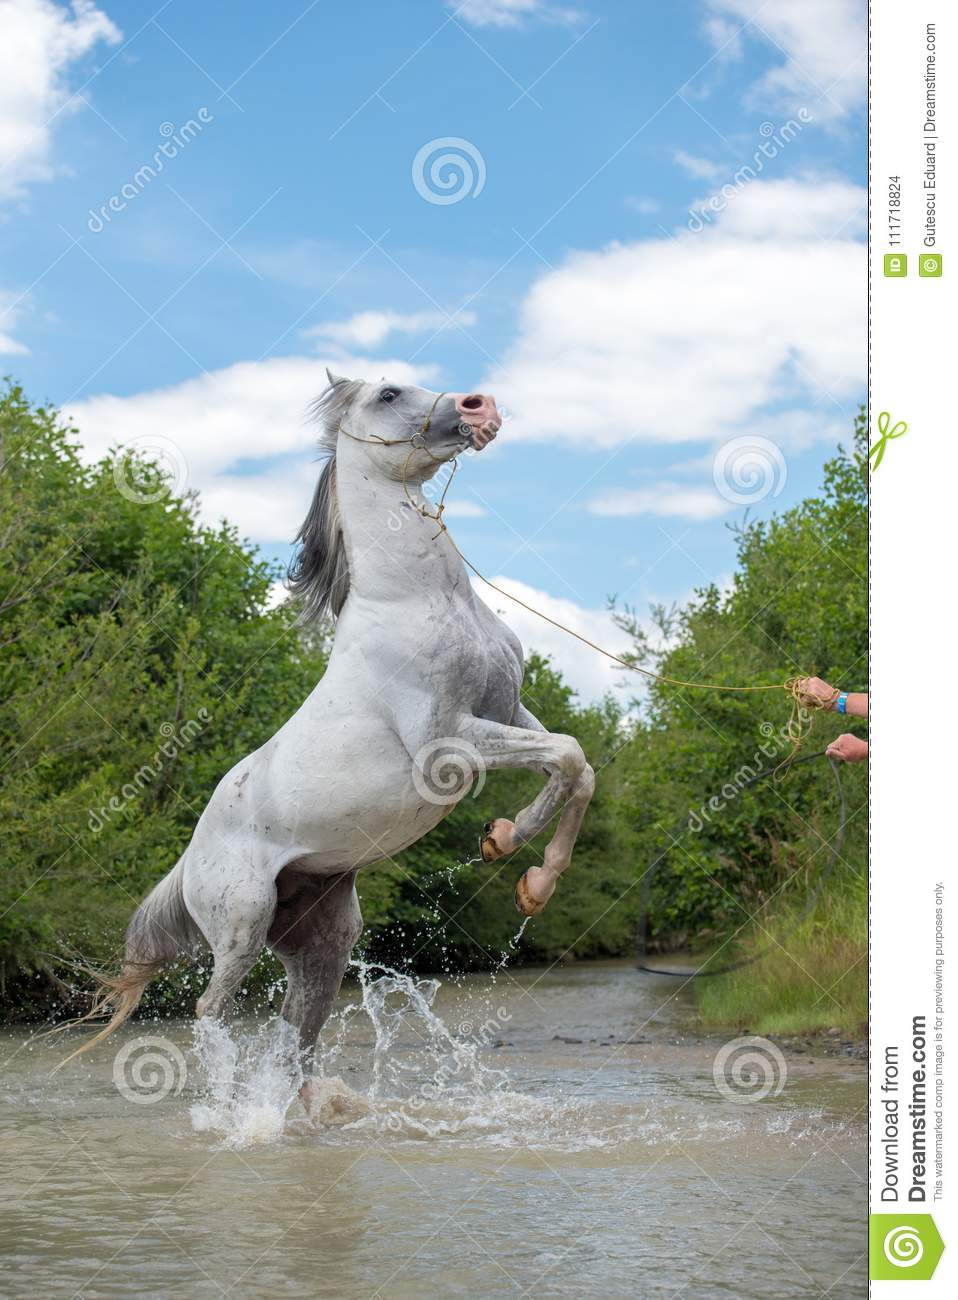 Pure Arabian White Horse On Training Day On Water Stock Photo Image Of Bridle Animal 111718824